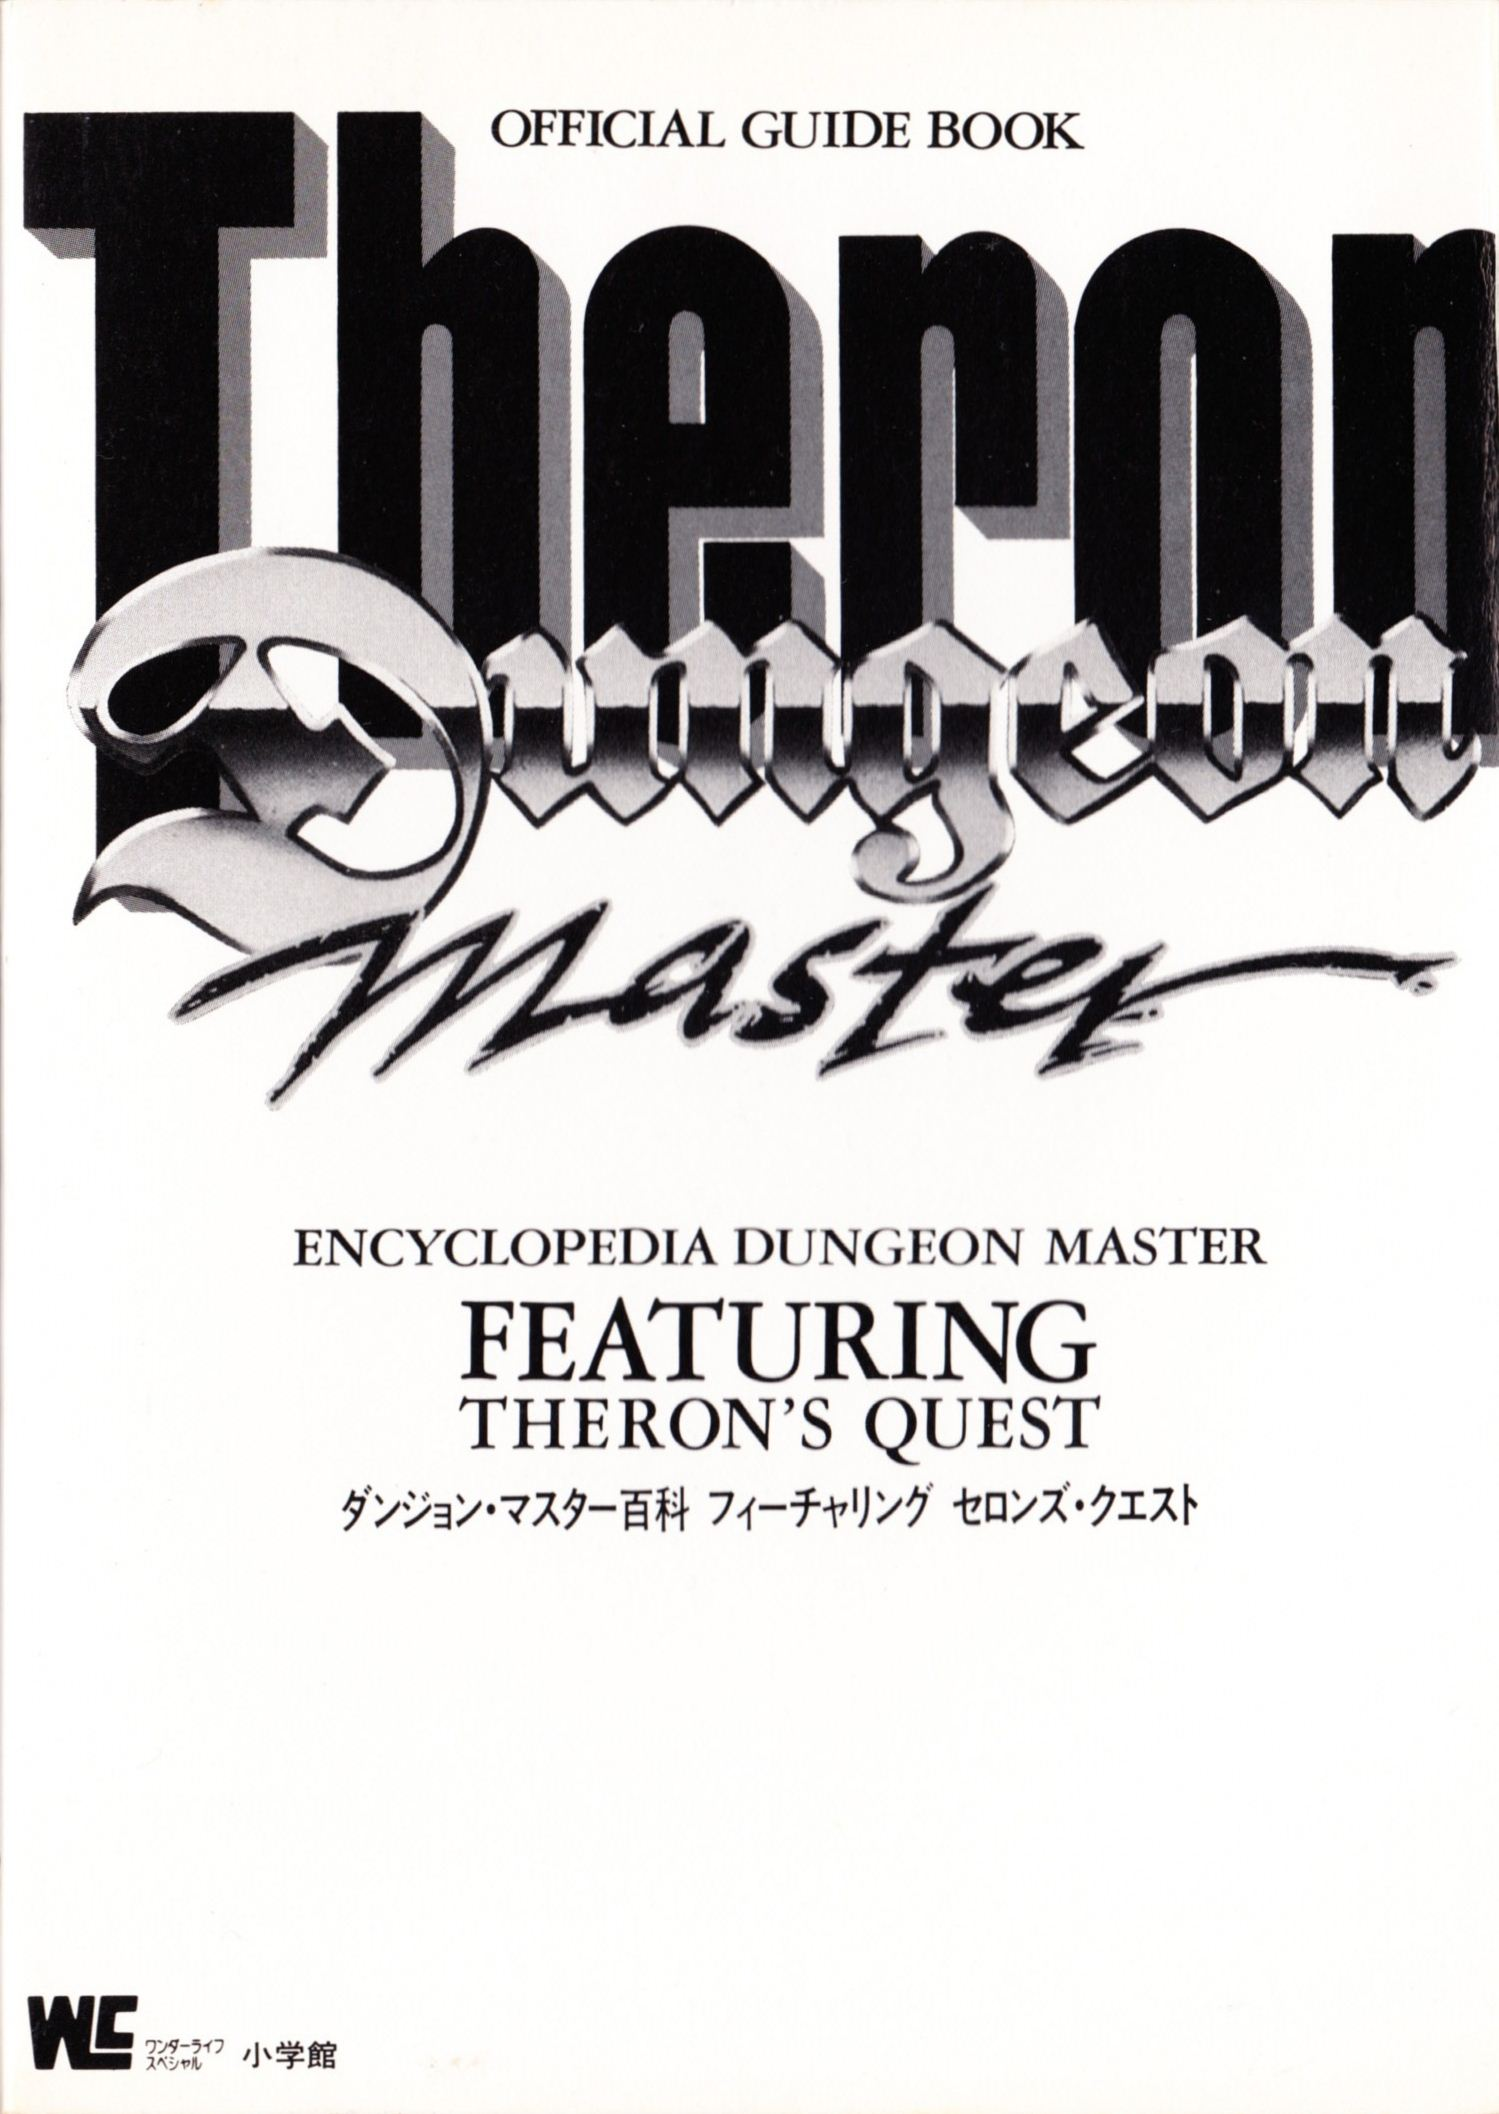 Hint Book - Encyclopedia Dungeon Master Featuring Theron's Quest - JP - Cover - Front - Scan